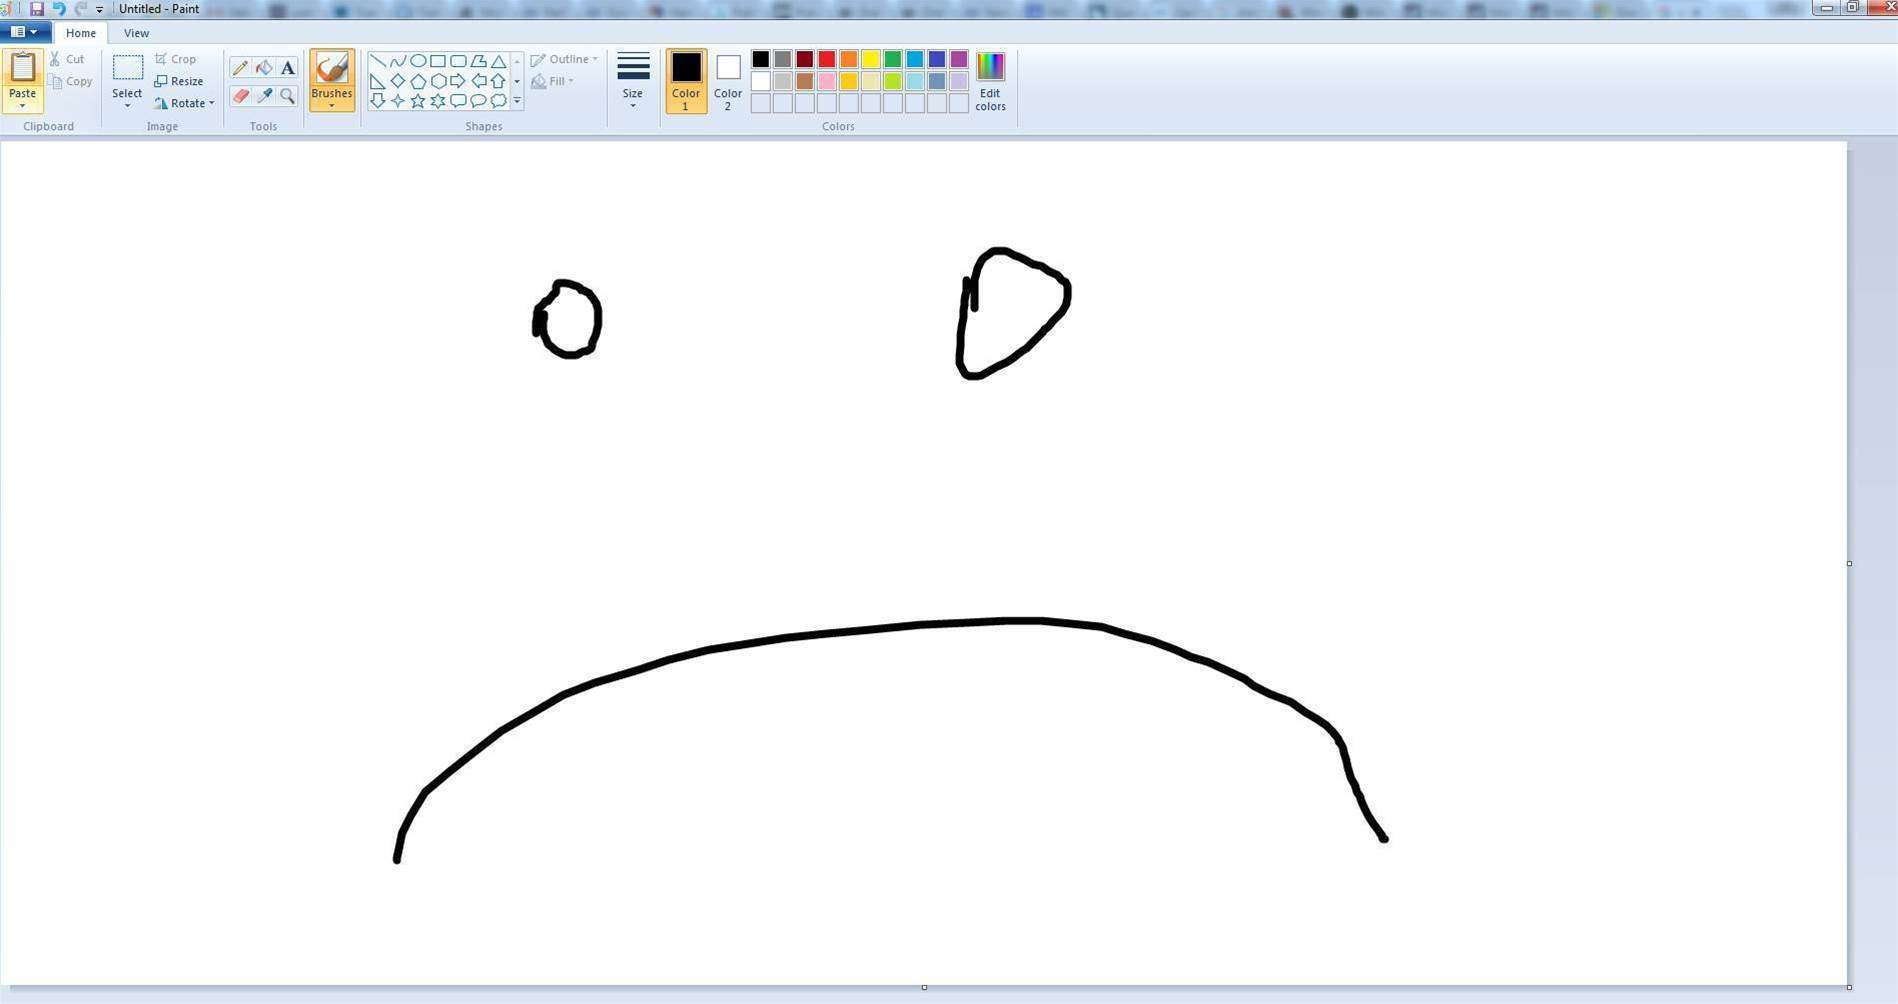 Microsoft is killing off Paint